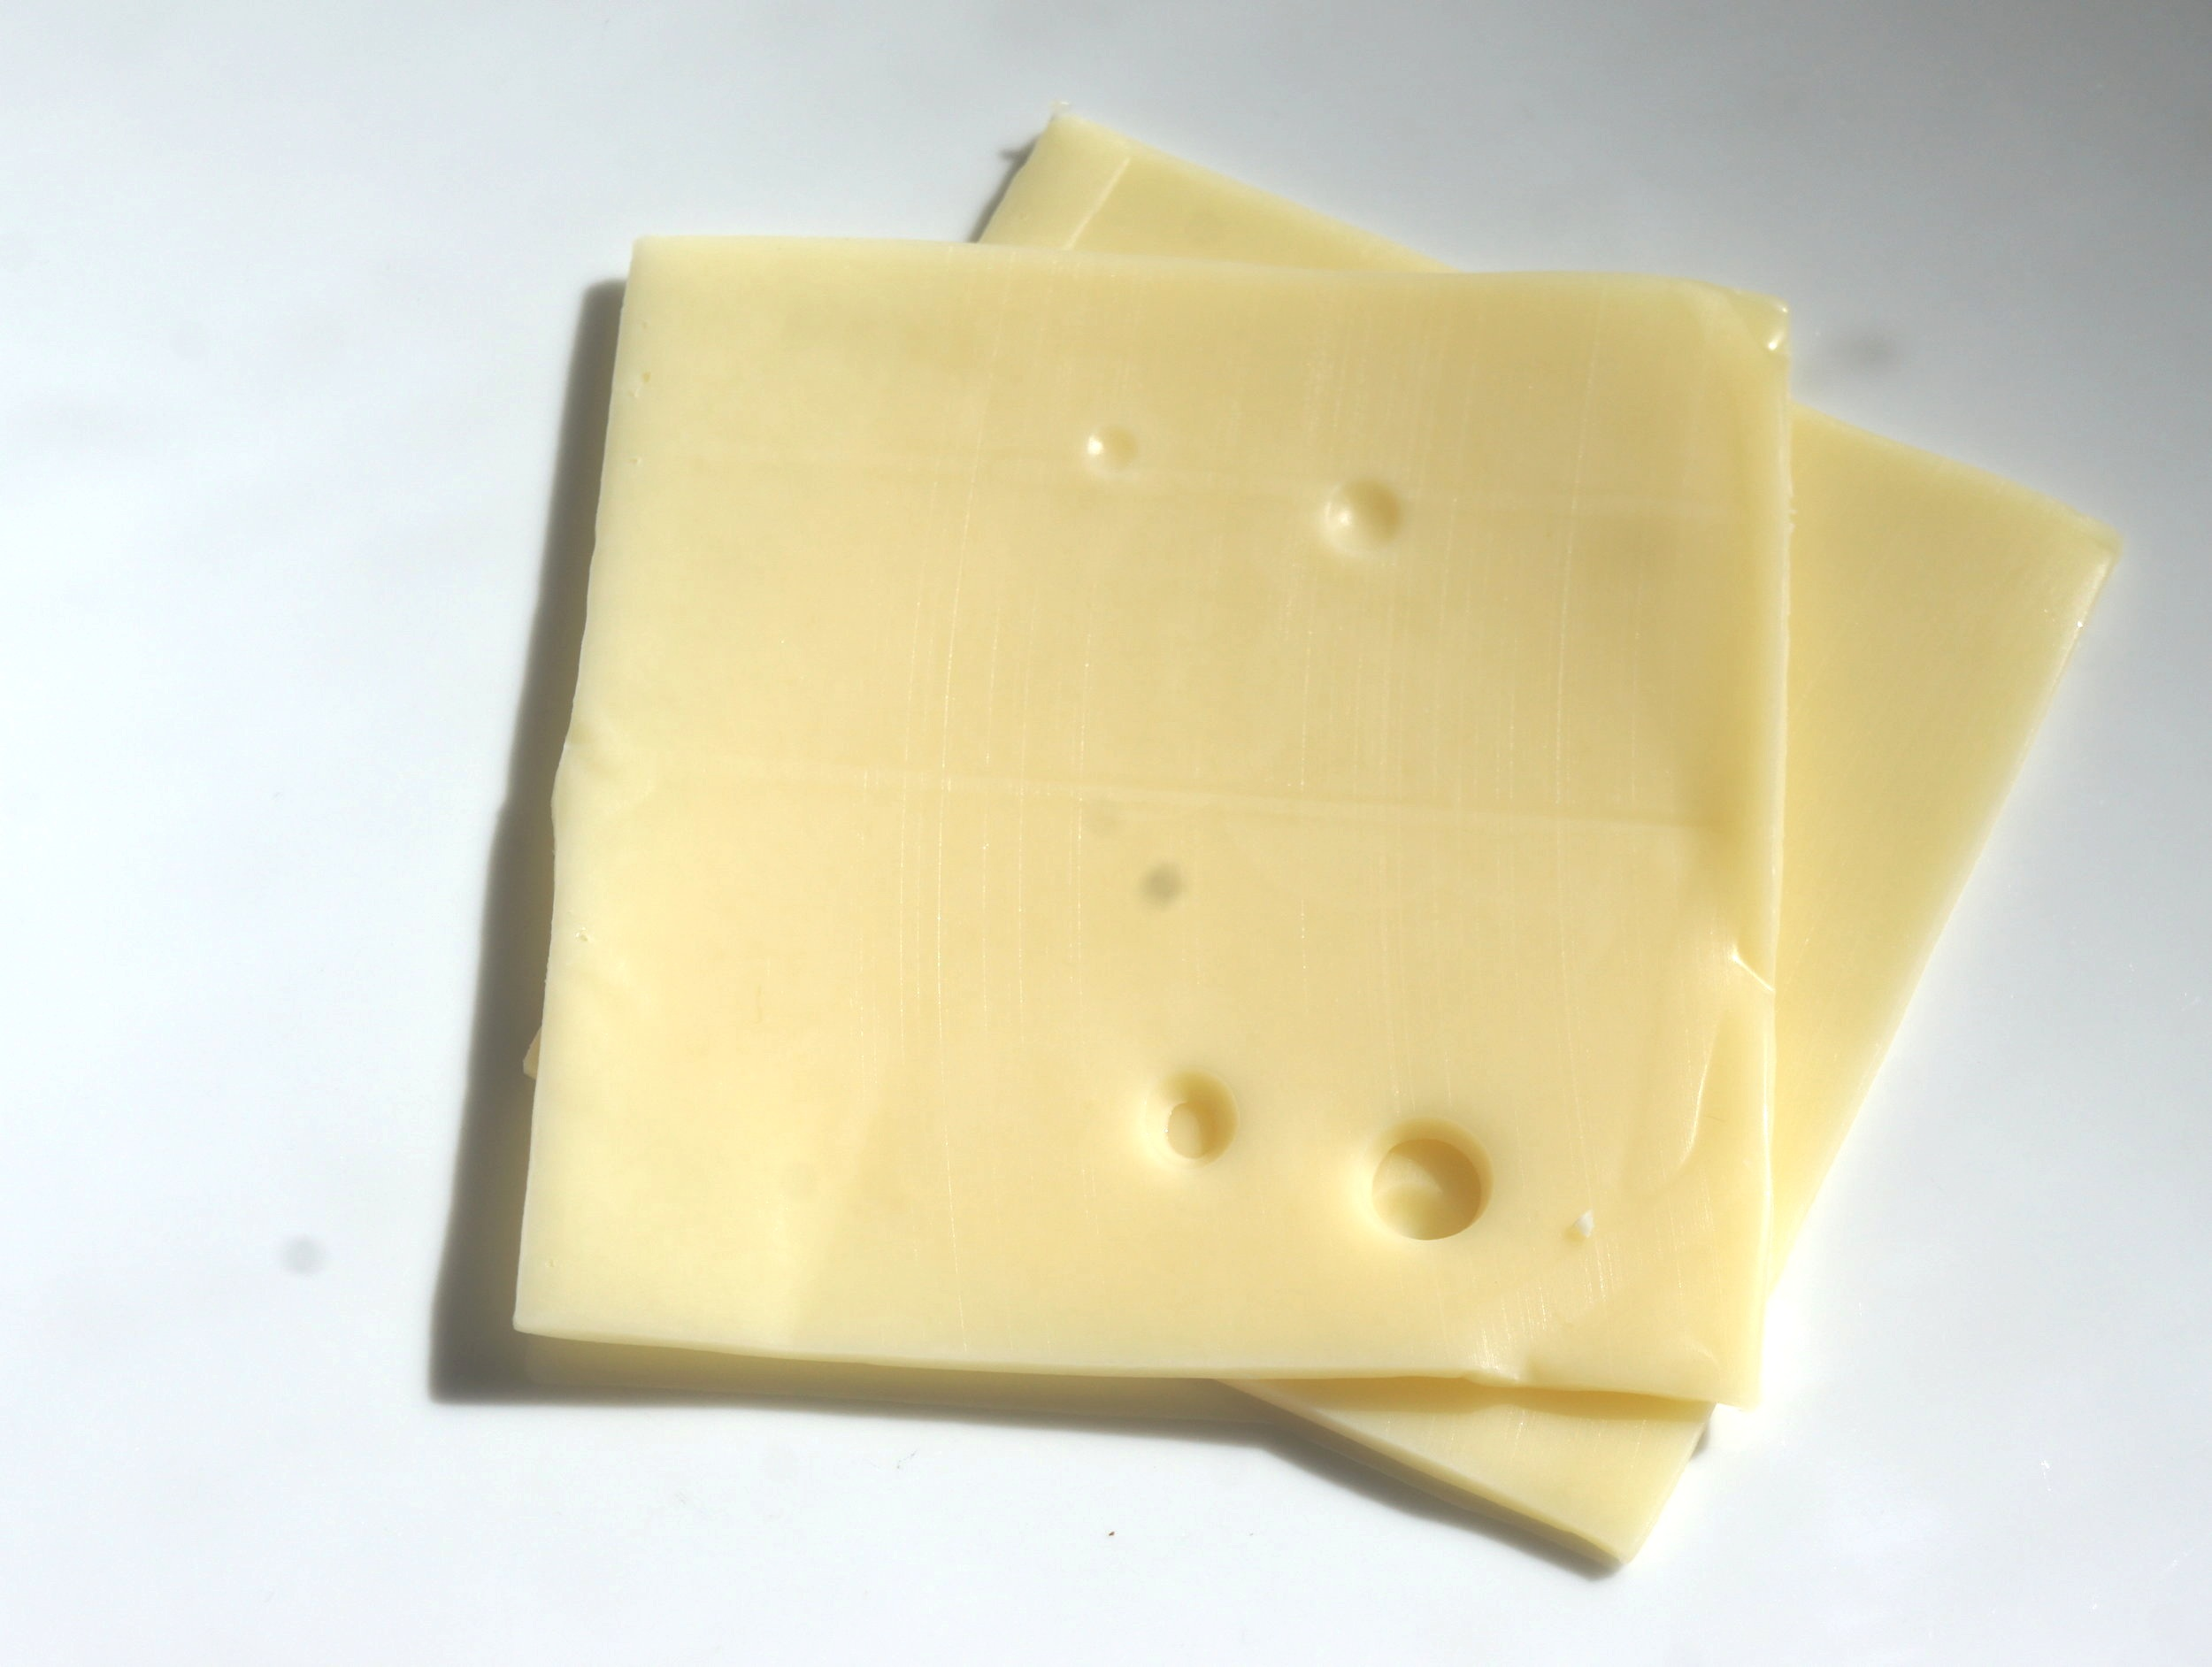 Each slice of cheese will have holes. - Where each slice of cheese is a layer in an architecture, a well designed system ensures that these holes do not and cannot, under any reasonable conditions, line up to let failures in lower layers make it all the way up to failures at the system level.